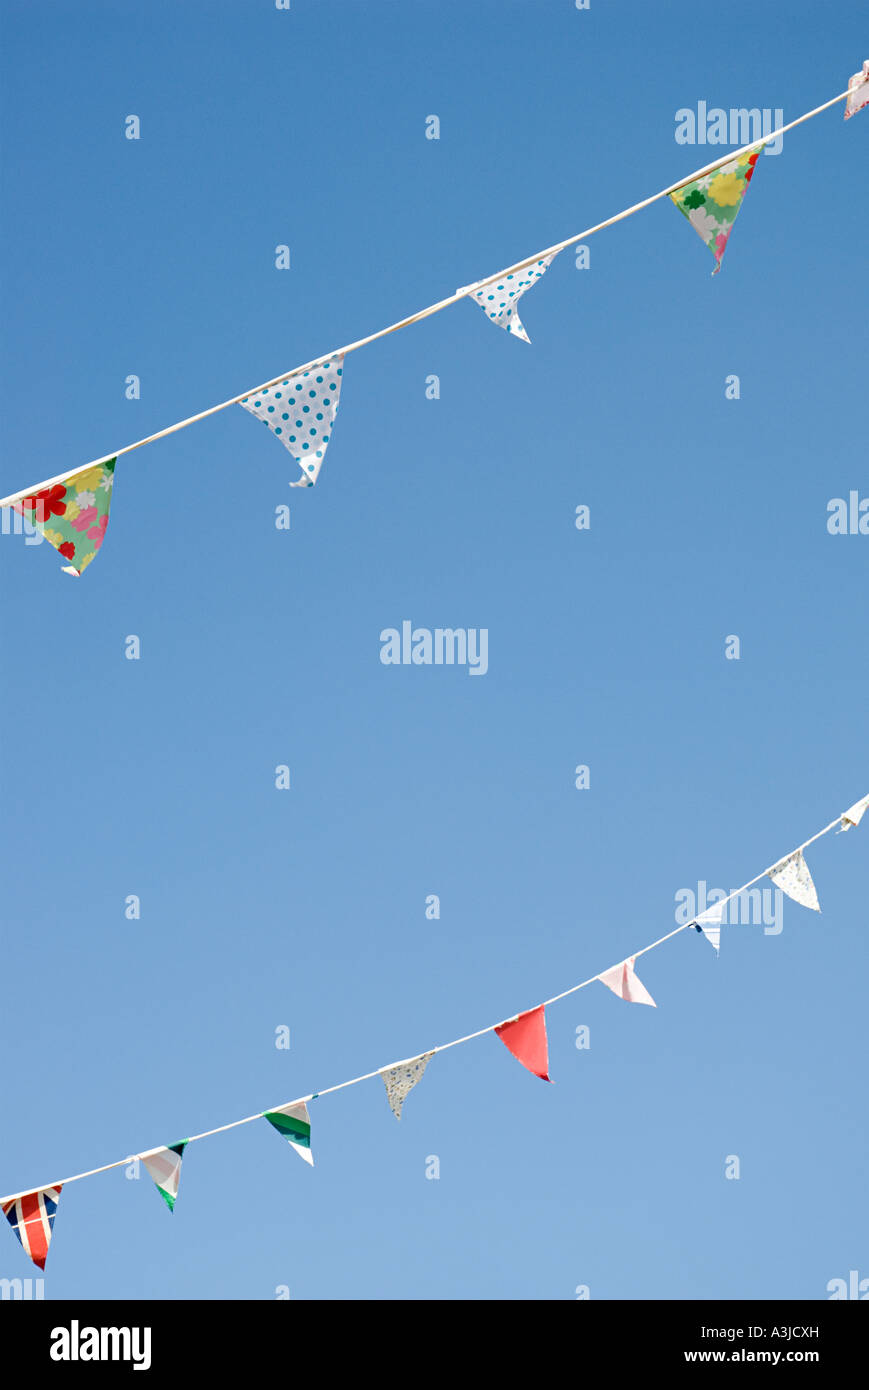 Rows of bunting - Stock Image